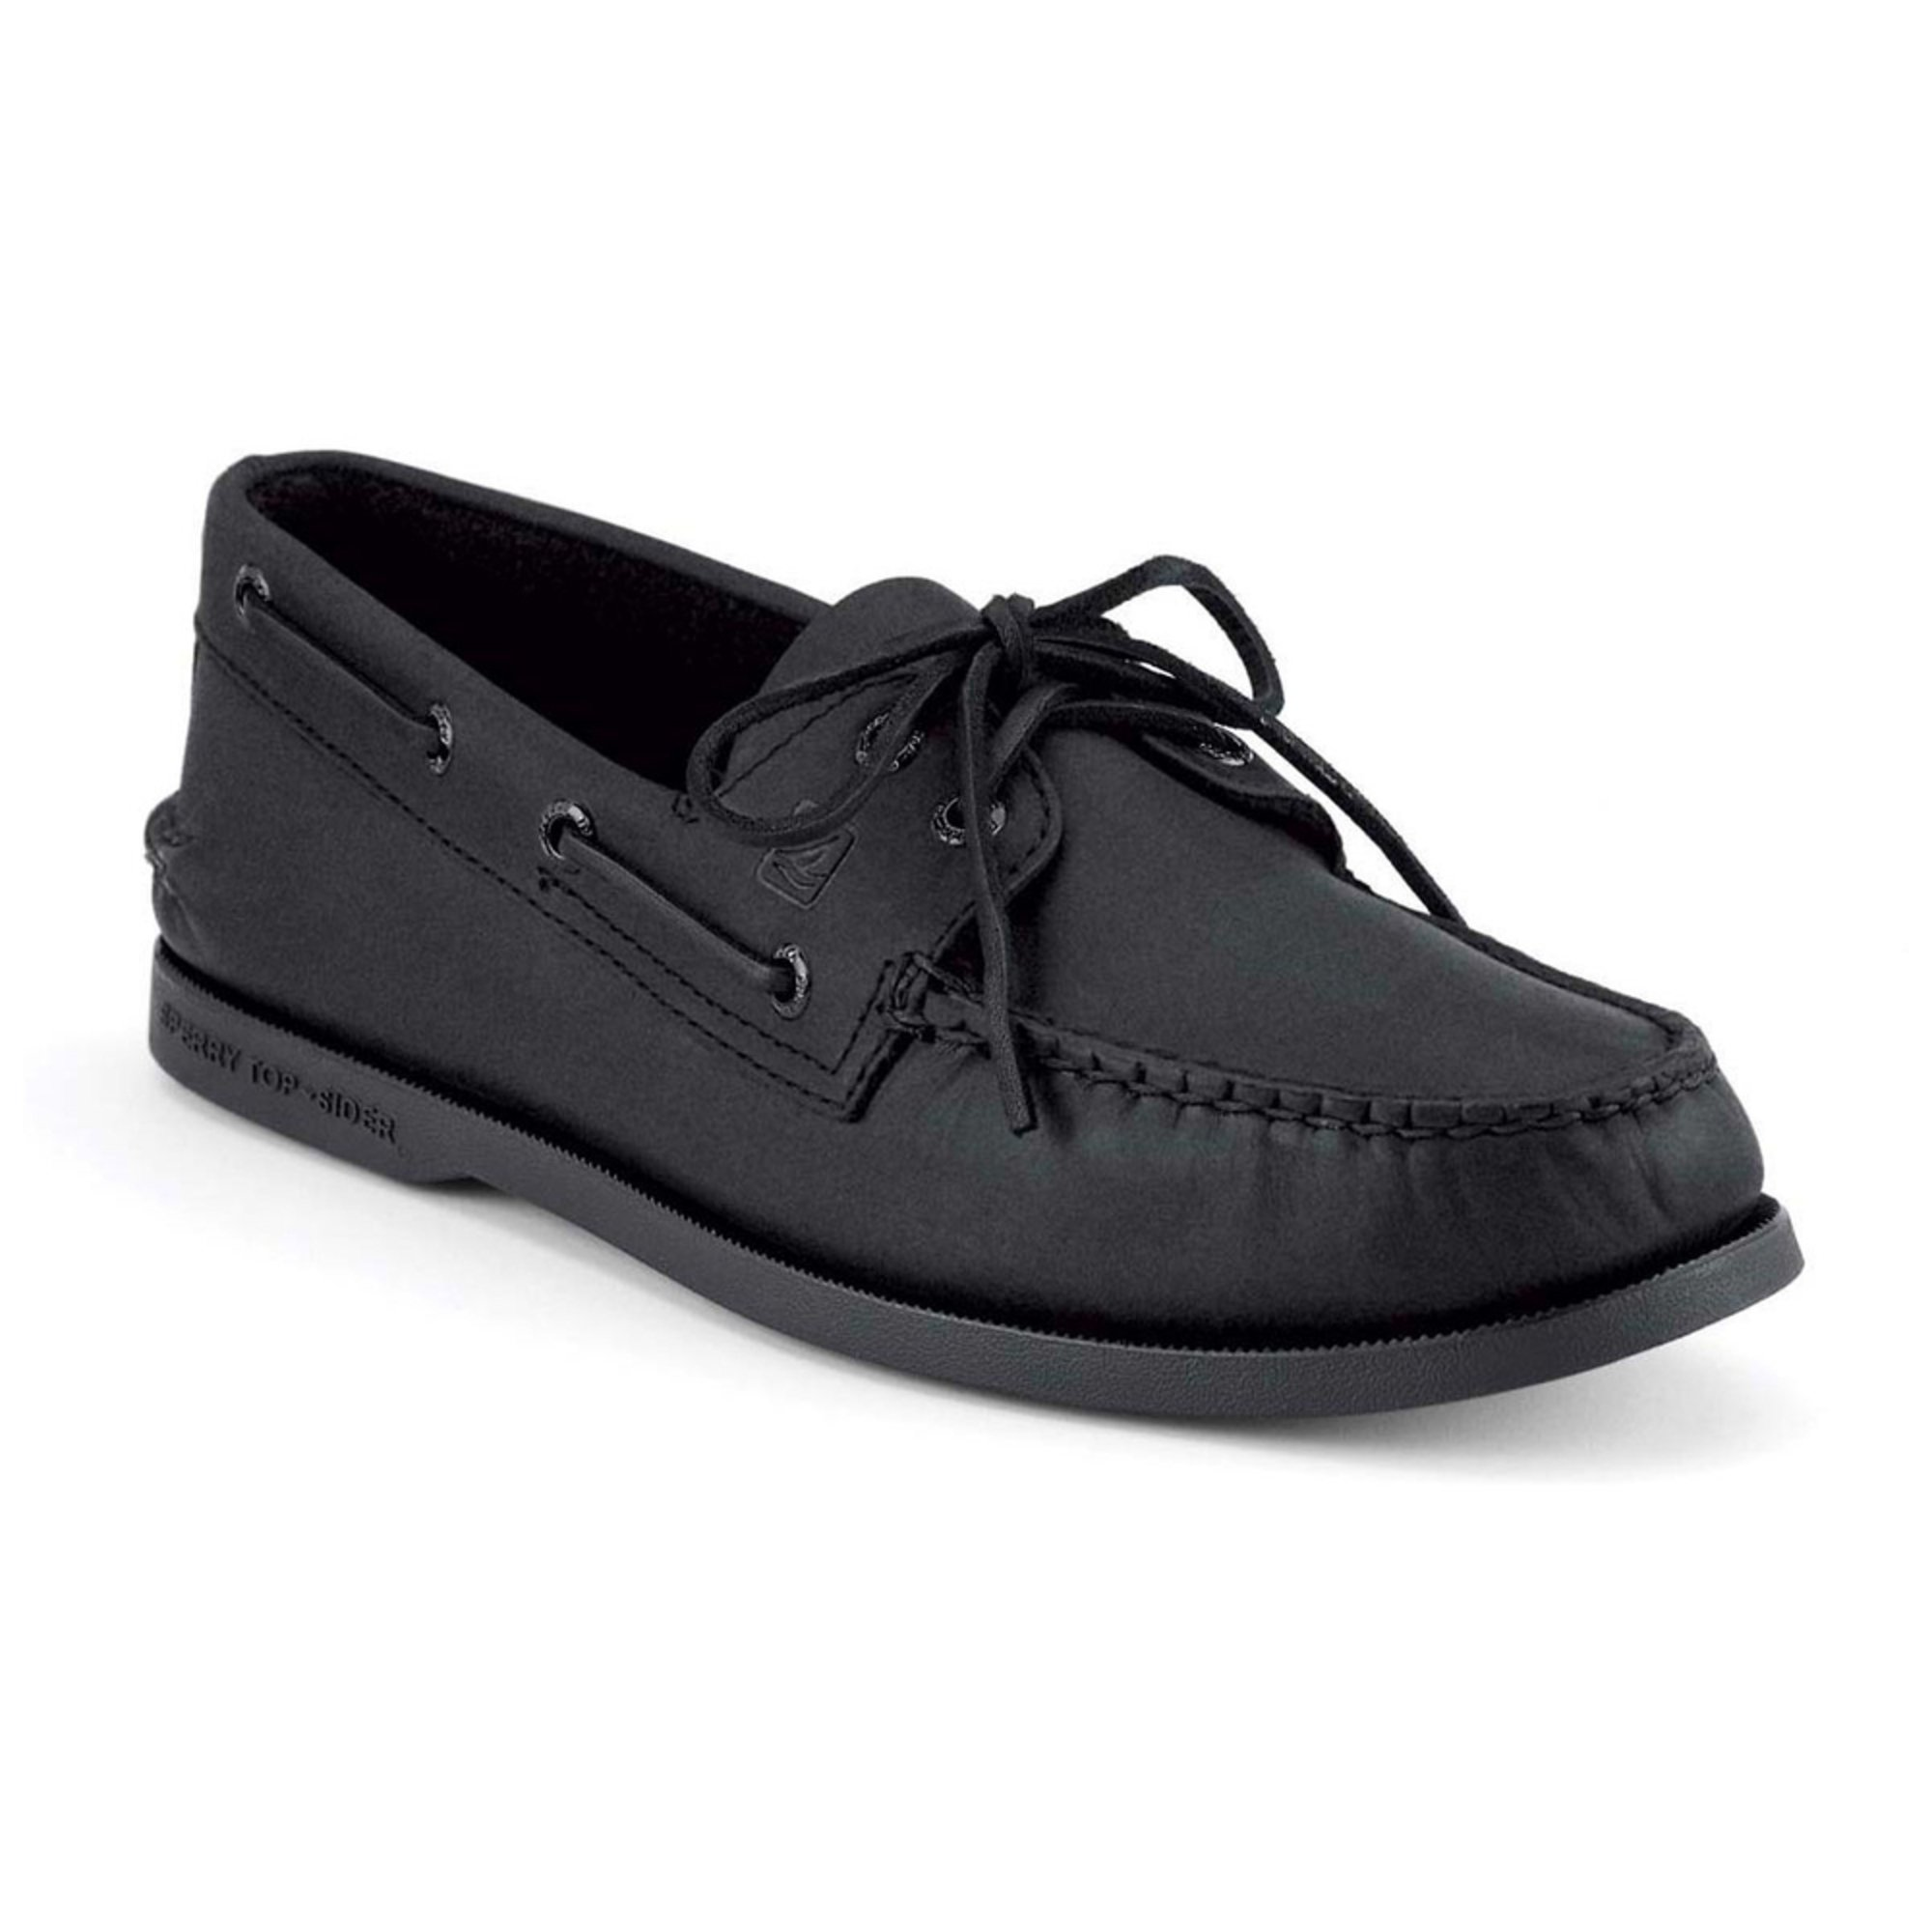 sperry black dating site 1000s of sperry women dating personals  whether you want black, white, older  bom is unlike any other sperry date site in that it provides a fun environment .